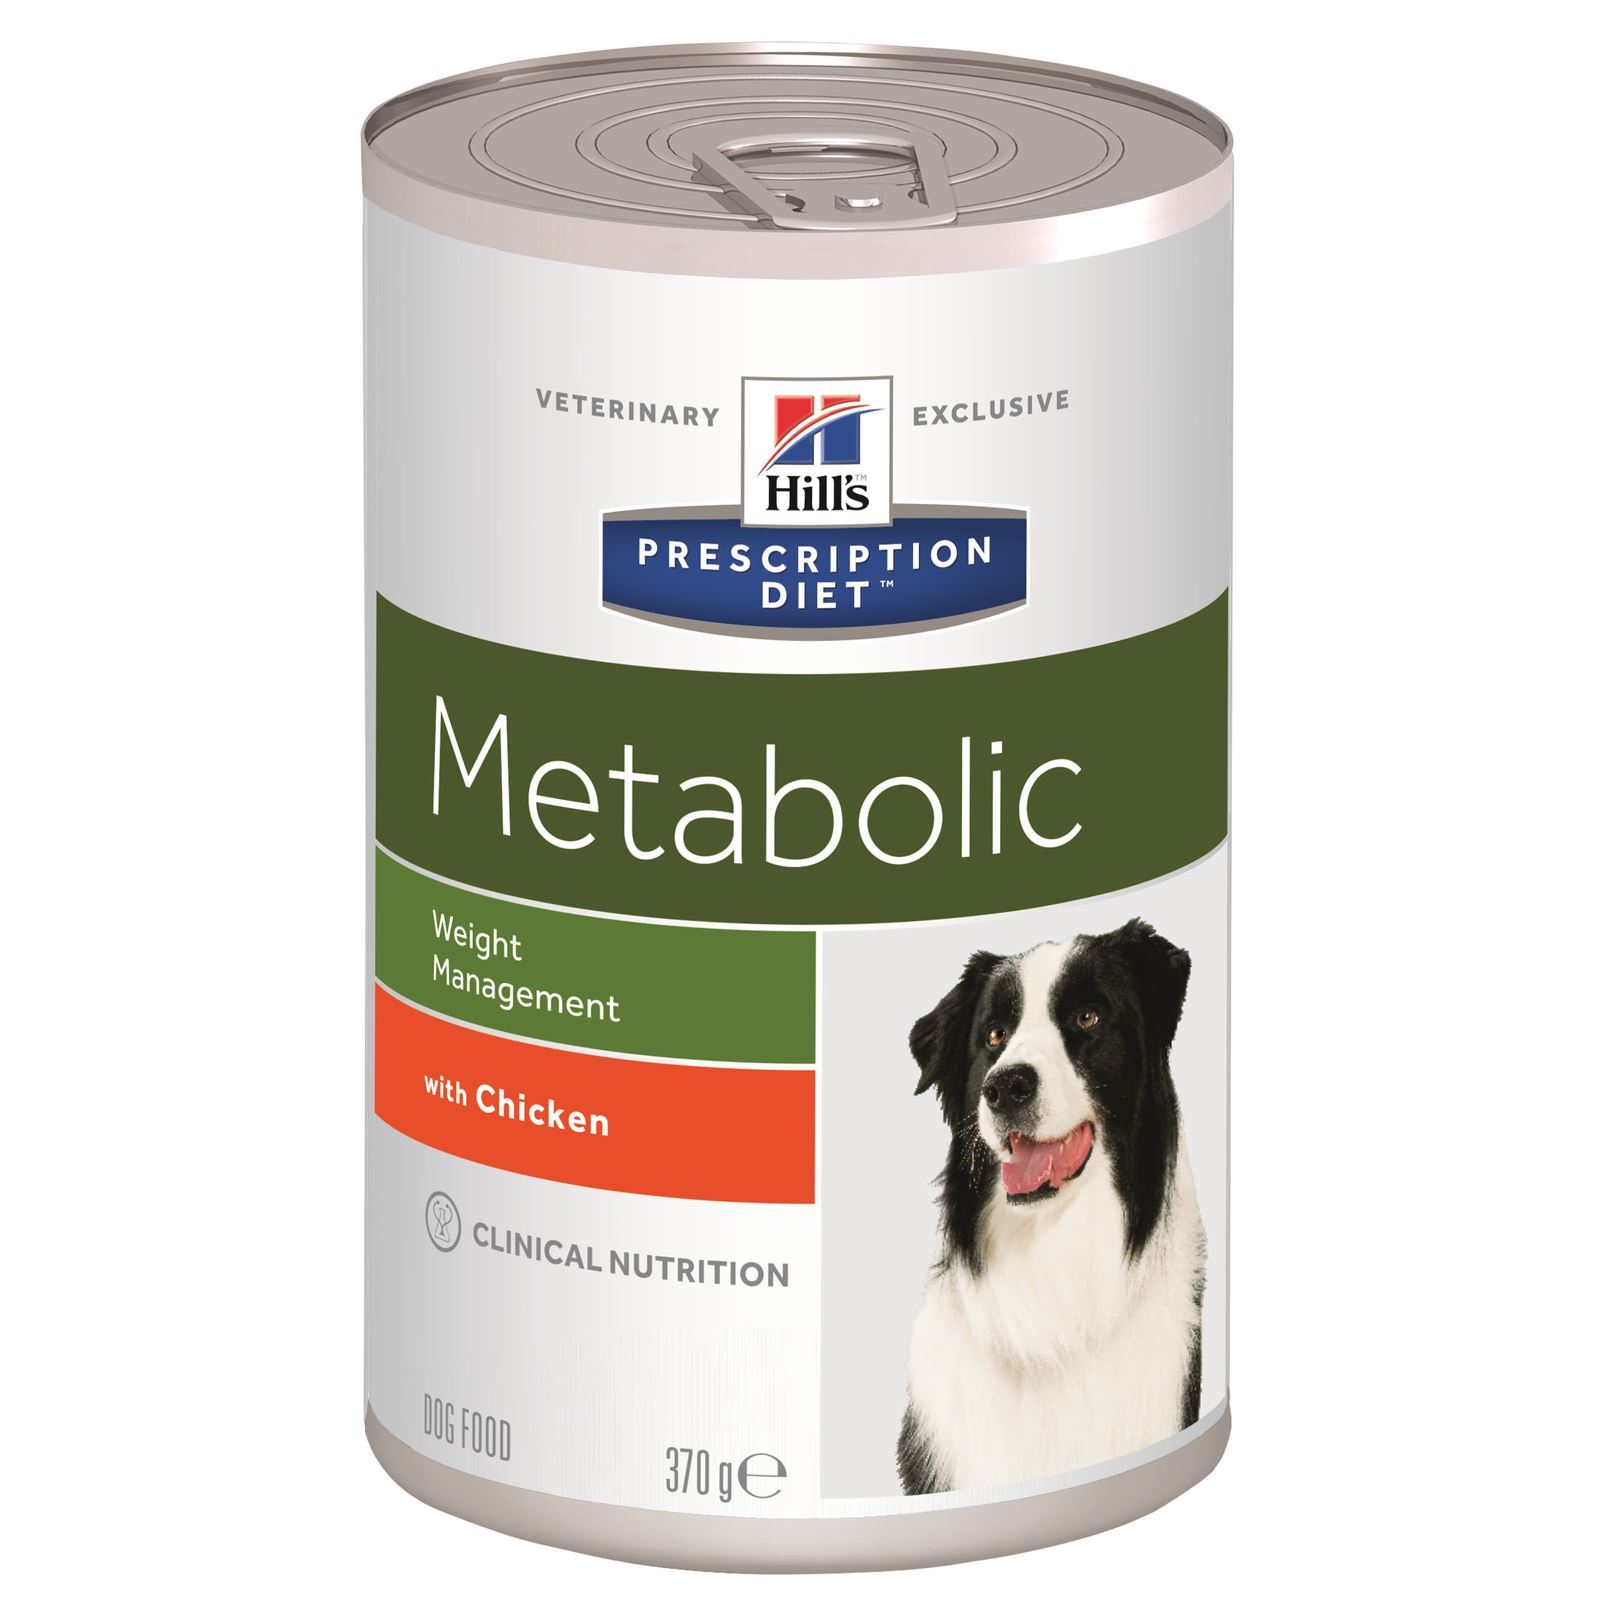 Hill´s Prescription Diet Canine Metabolic Lata 370gr - Imagen 1